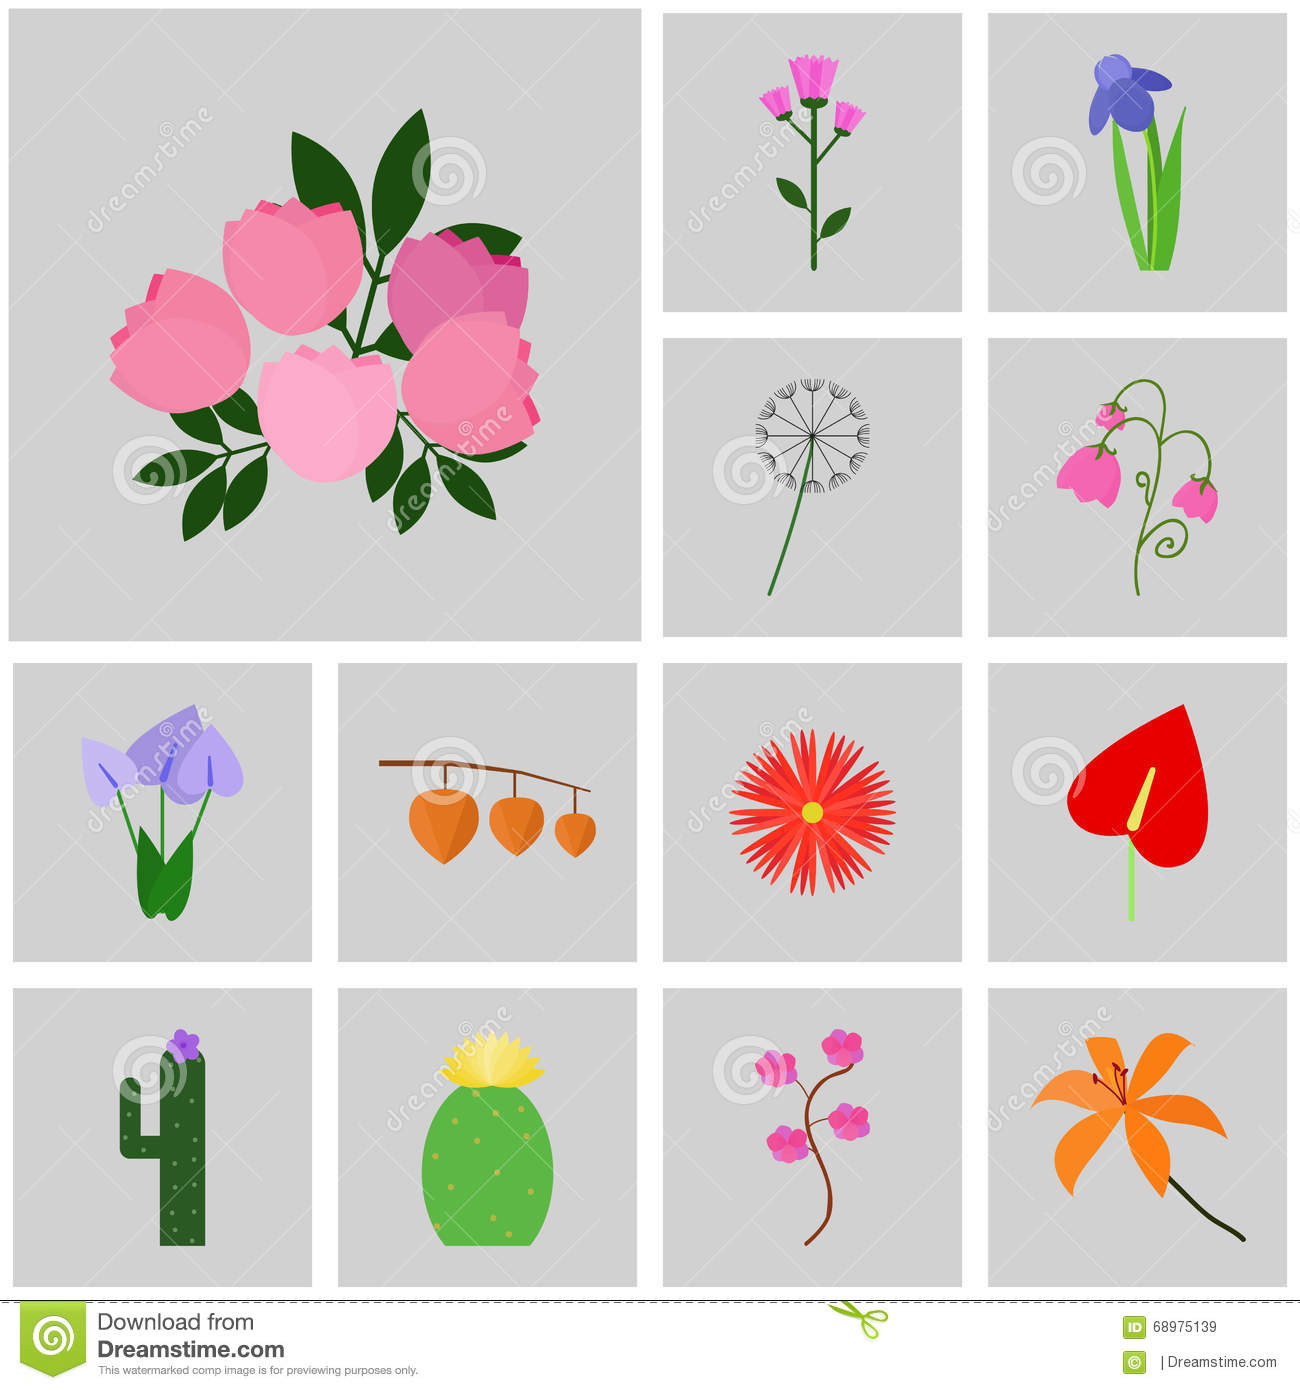 Icons gray square vector icon set flower icon peony pink flower gray icon peony pink dhlflorist Images